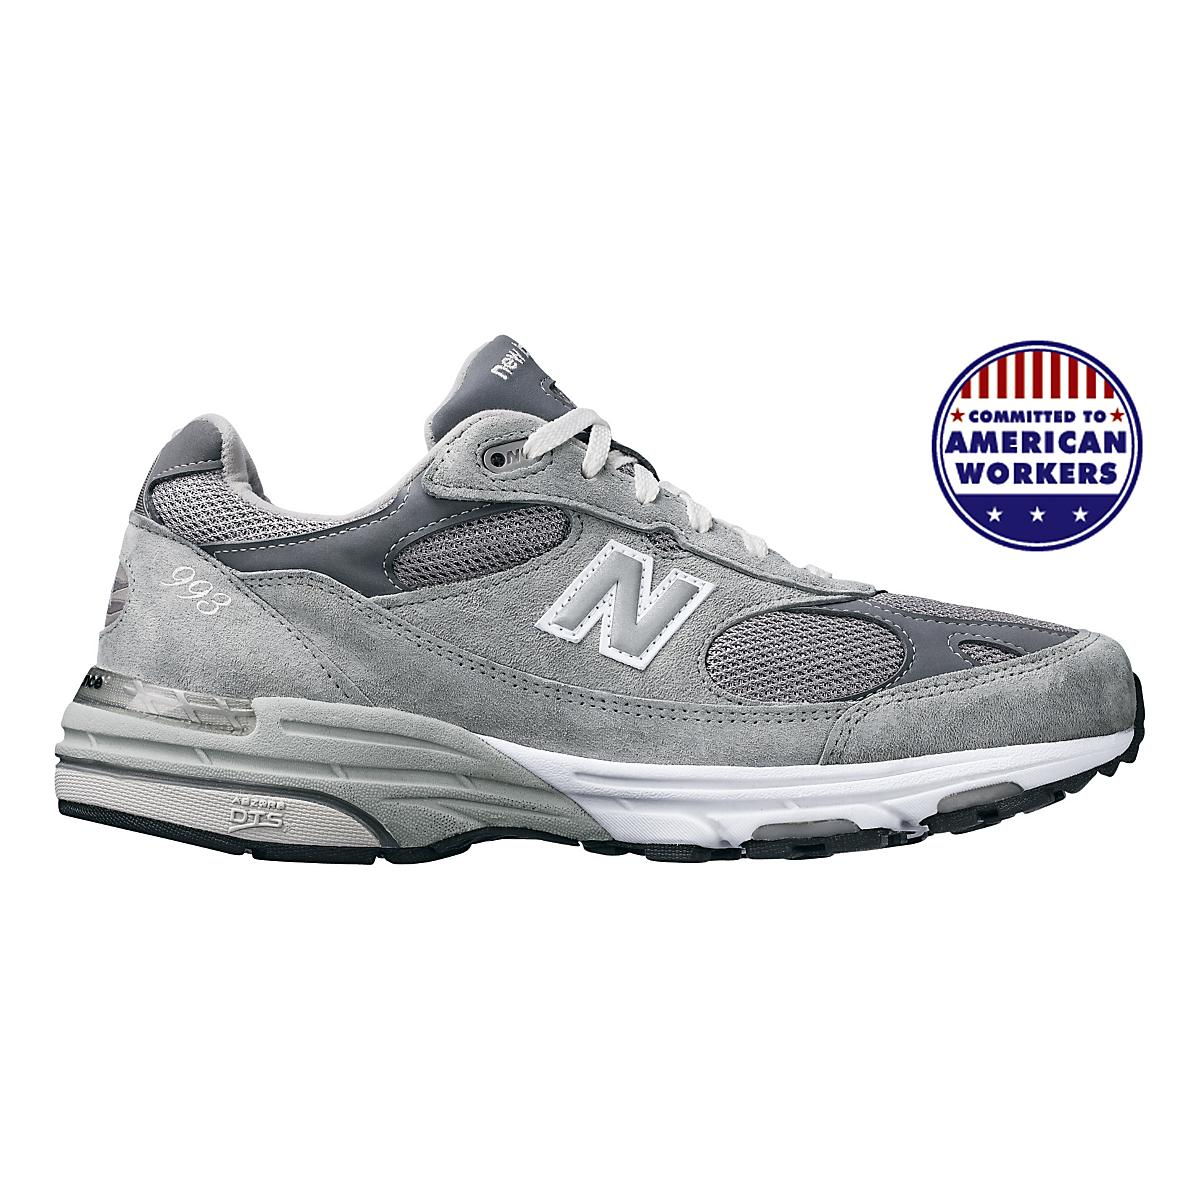 73d6b530f0cf9 Mens New Balance 993 Running Shoe at Road Runner Sports